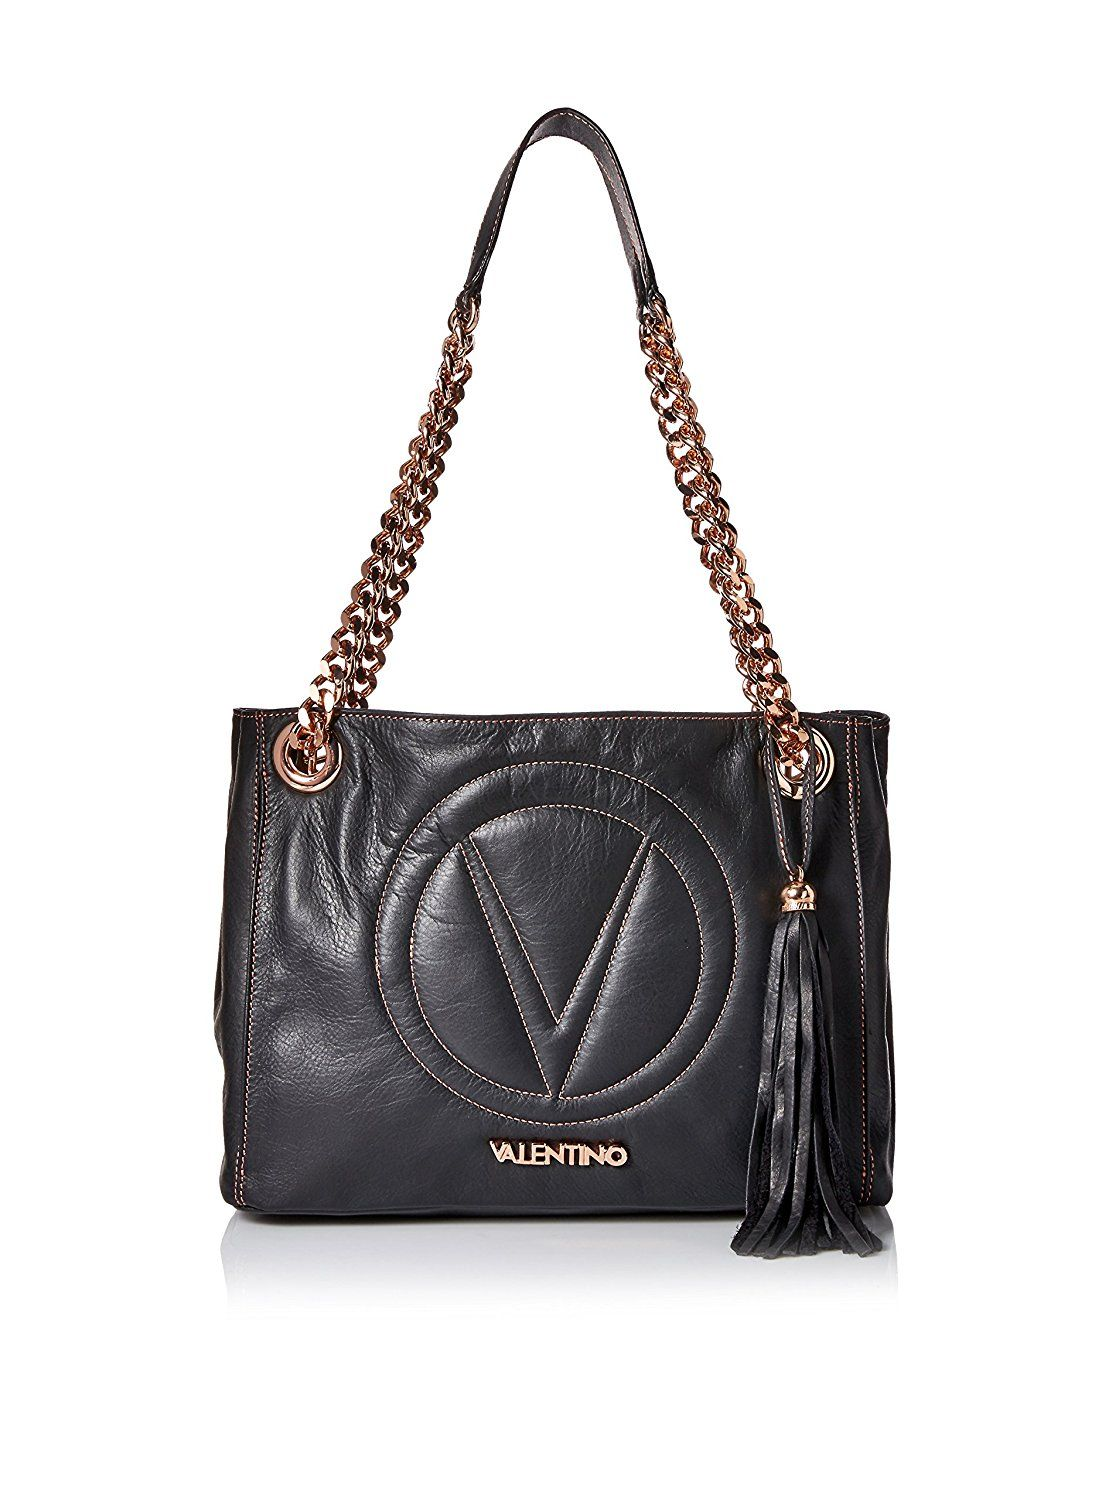 Valentino Bags By Mario Valentino Womens Luisa 2 Wow I Love This Check It Out Now Amazon Affiliated Valentino Bags Shoulder Handbags Denim Handbags